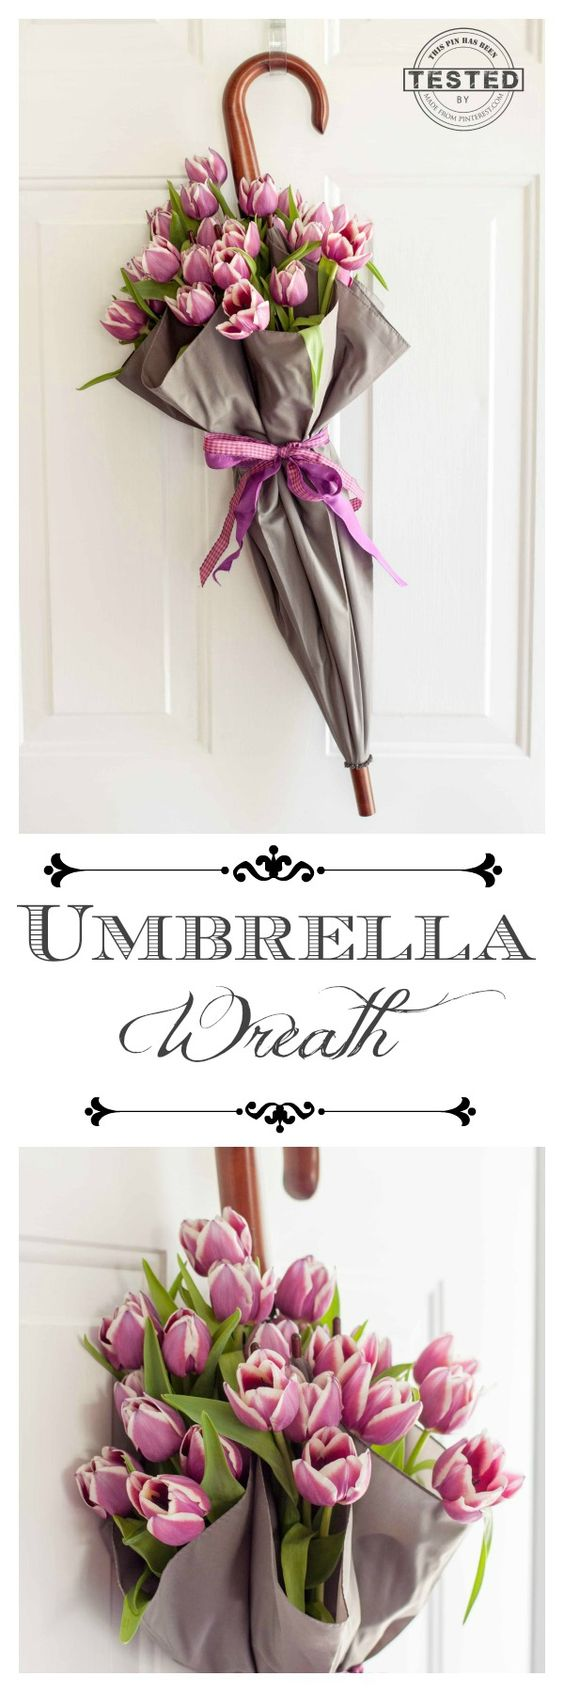 This Umbrella Wreath is easy to make. Great tip if you want to use fresh flowers!: